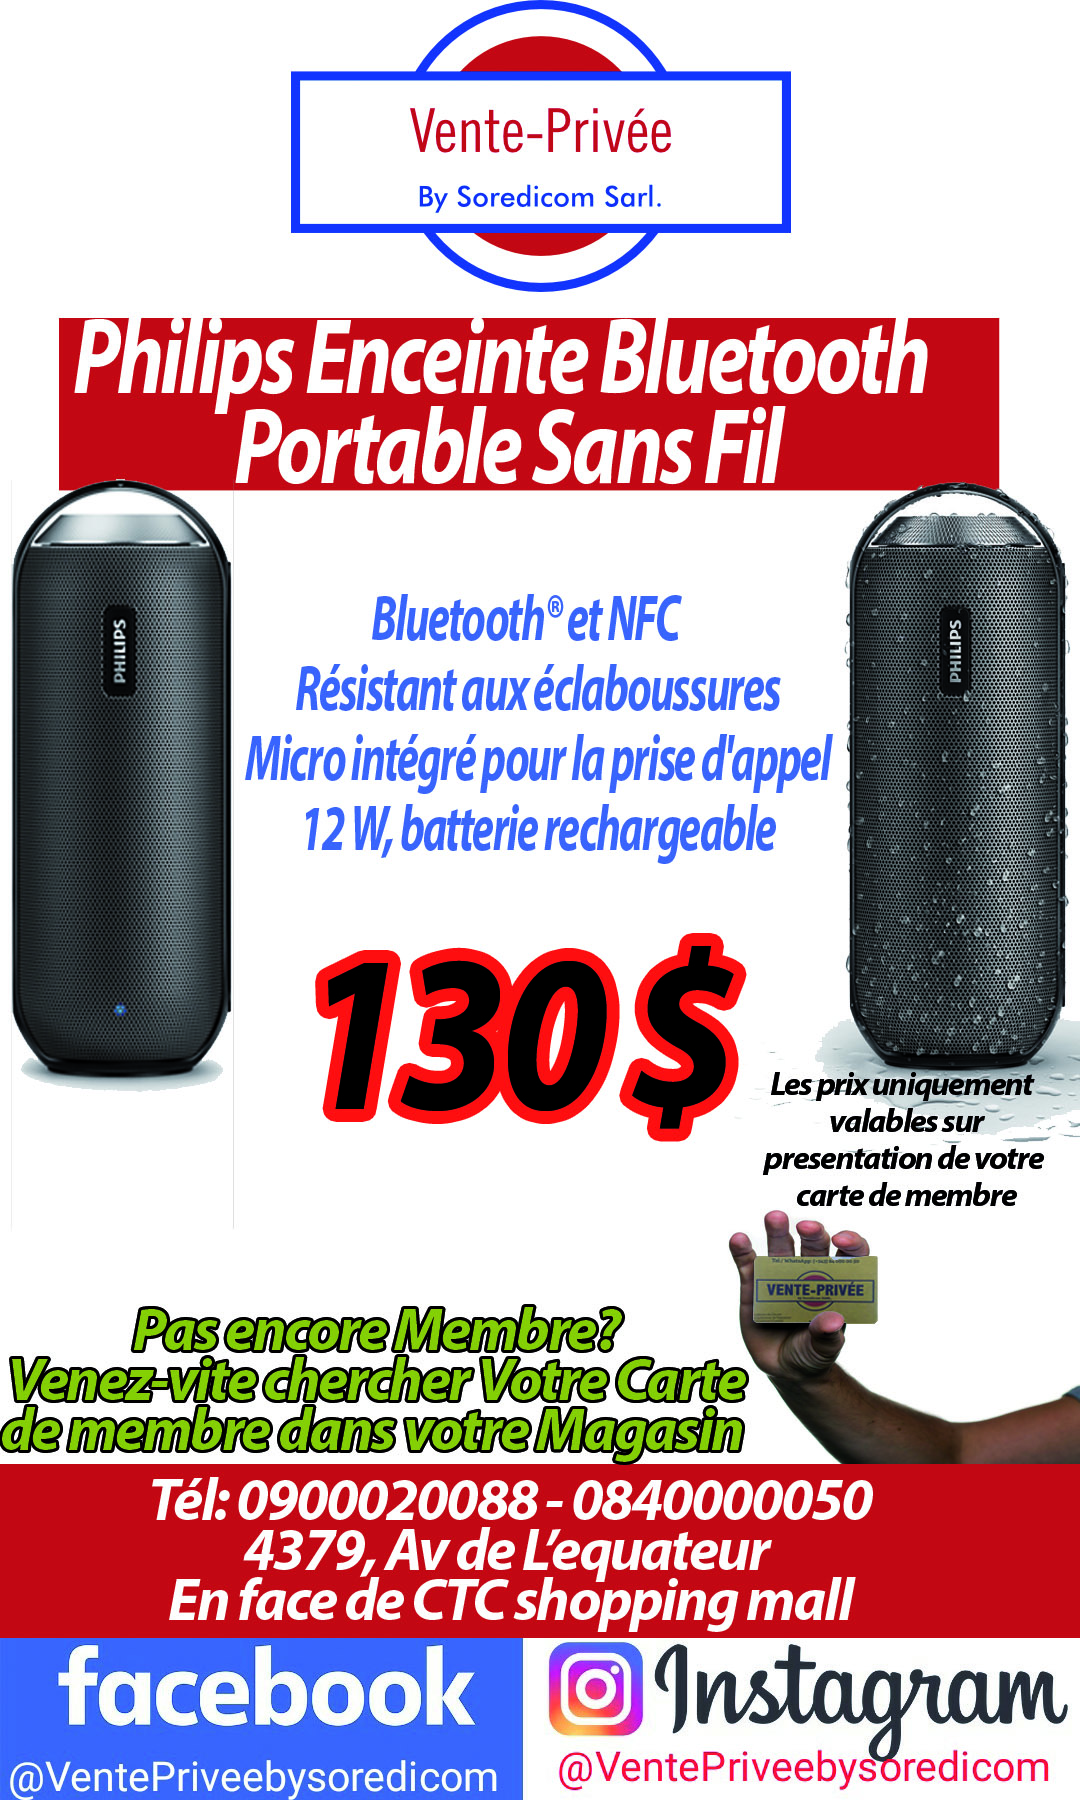 Disponible Chez Vente Privee Bizcongo